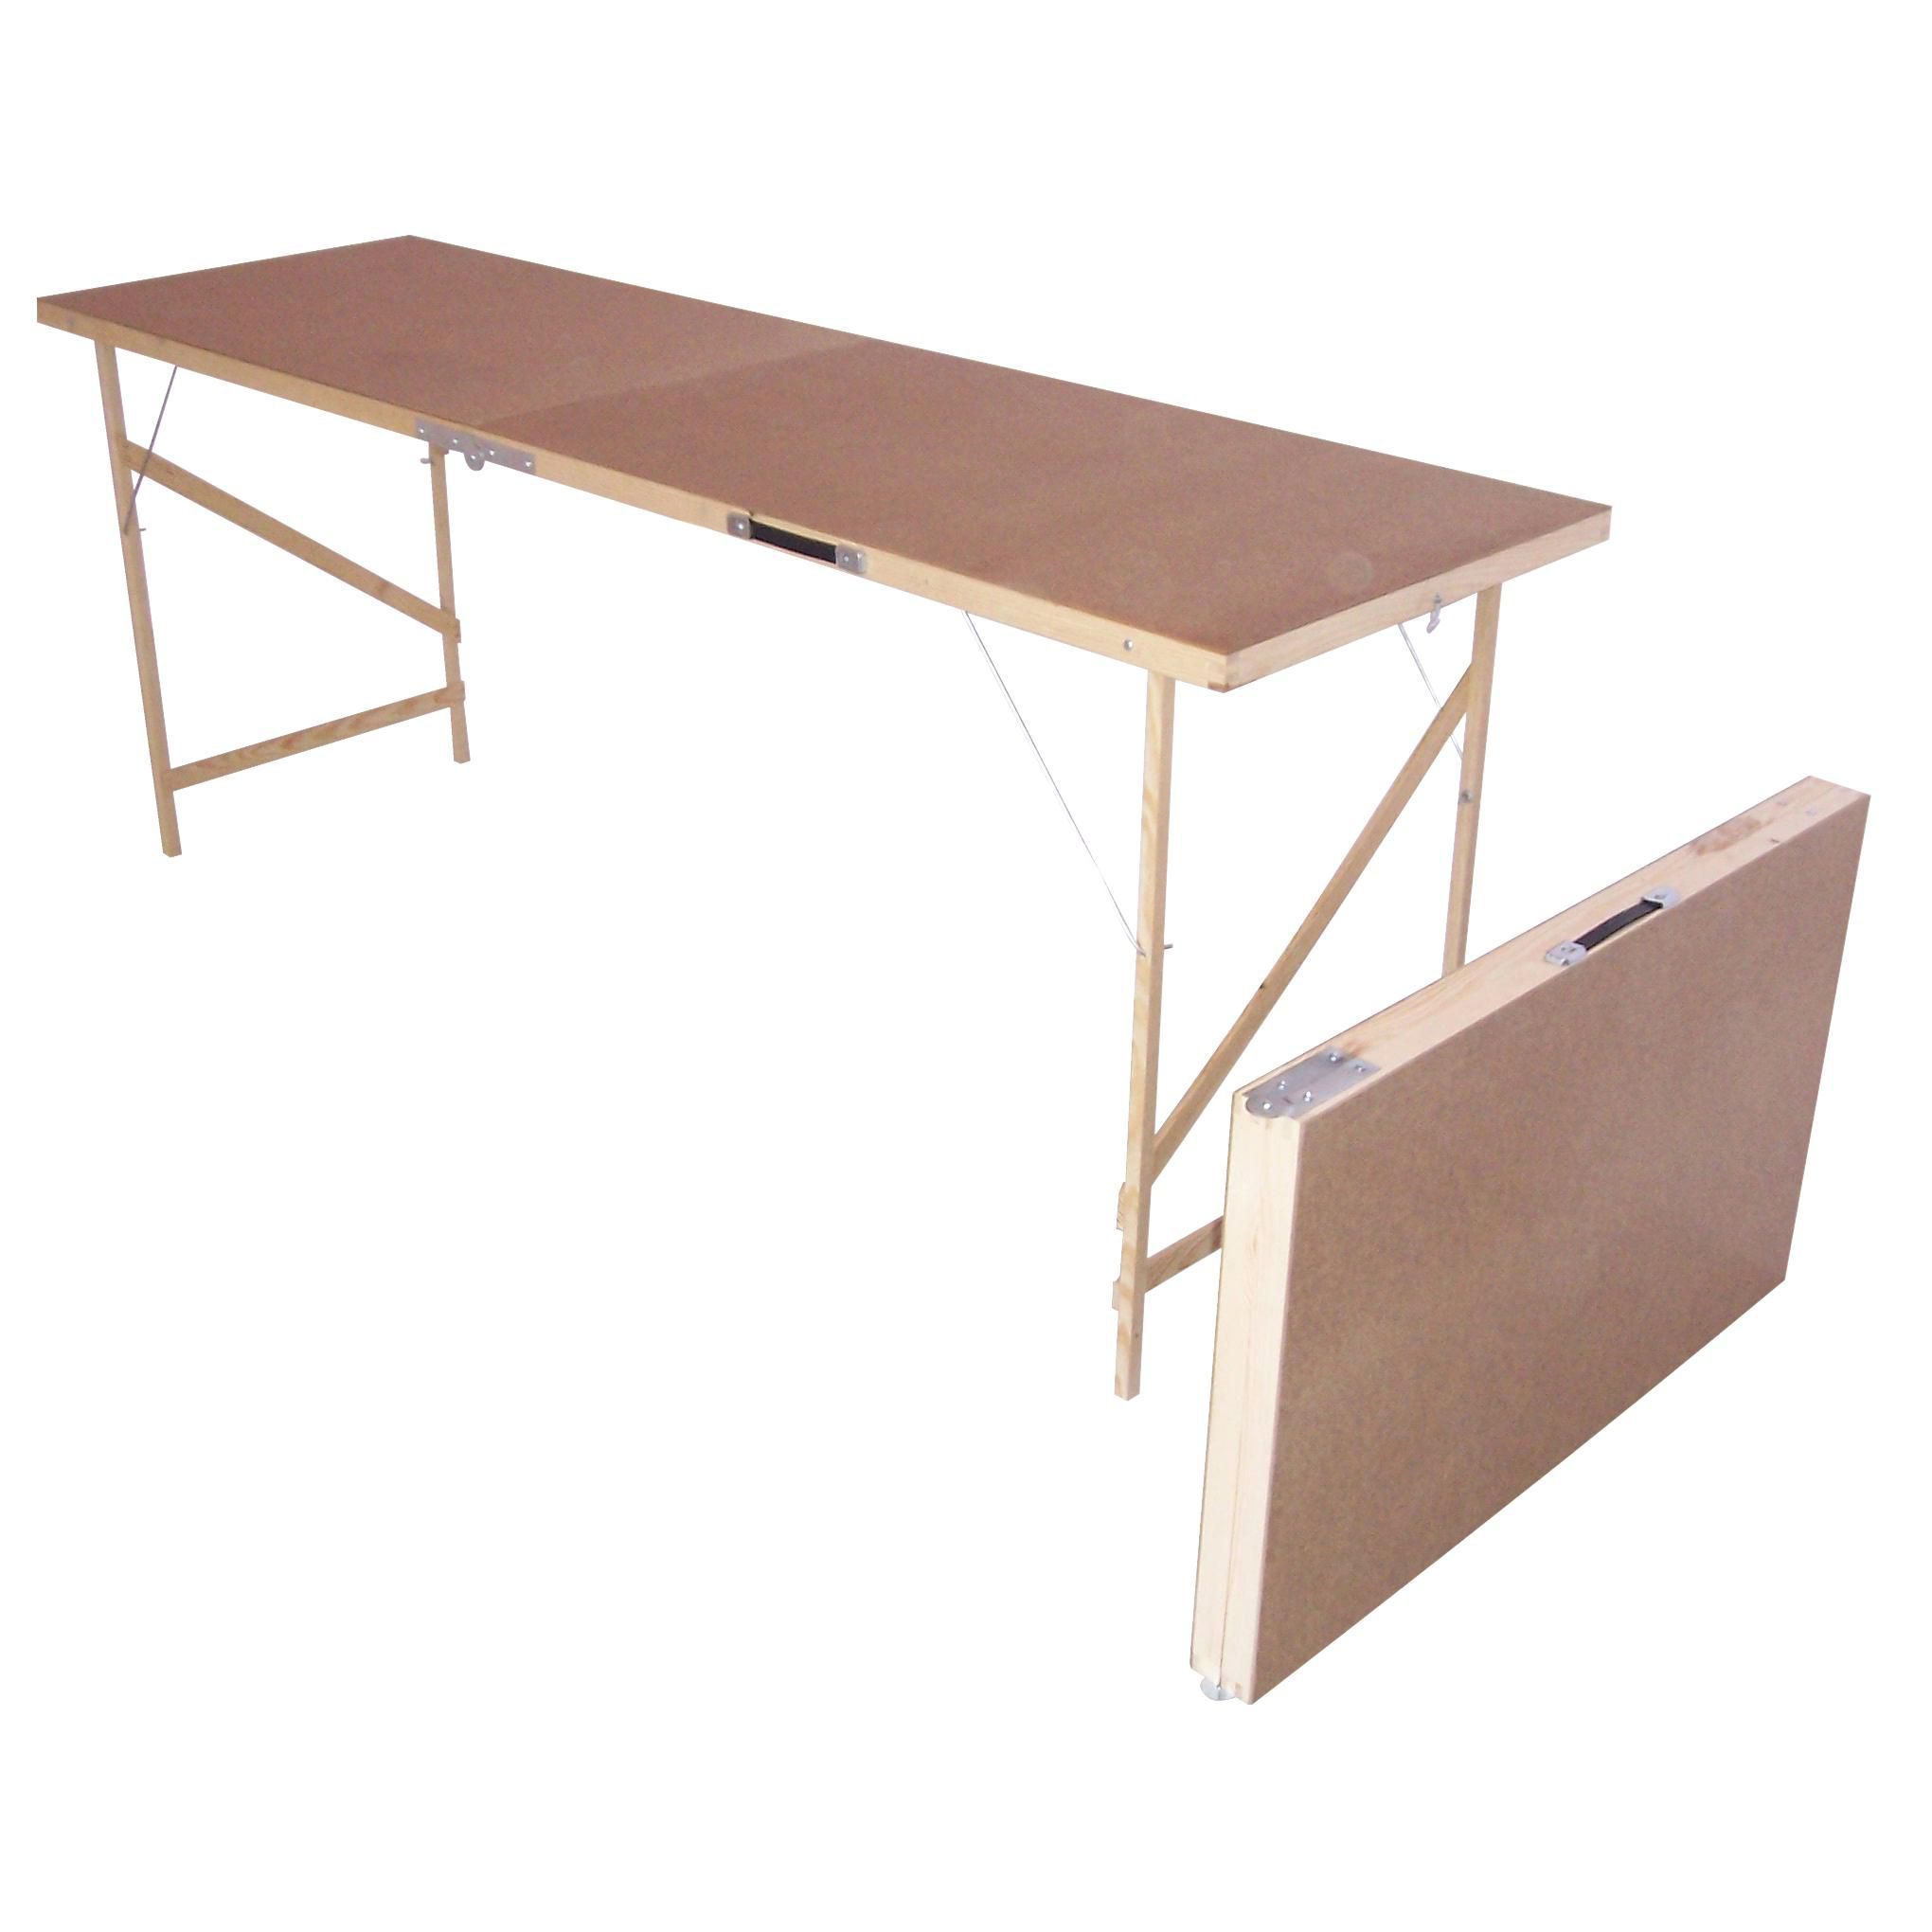 B&Q Foldable Paste Table (H)740mm (W)560mm (L)1780mm | Departments | DIY at  B&Q